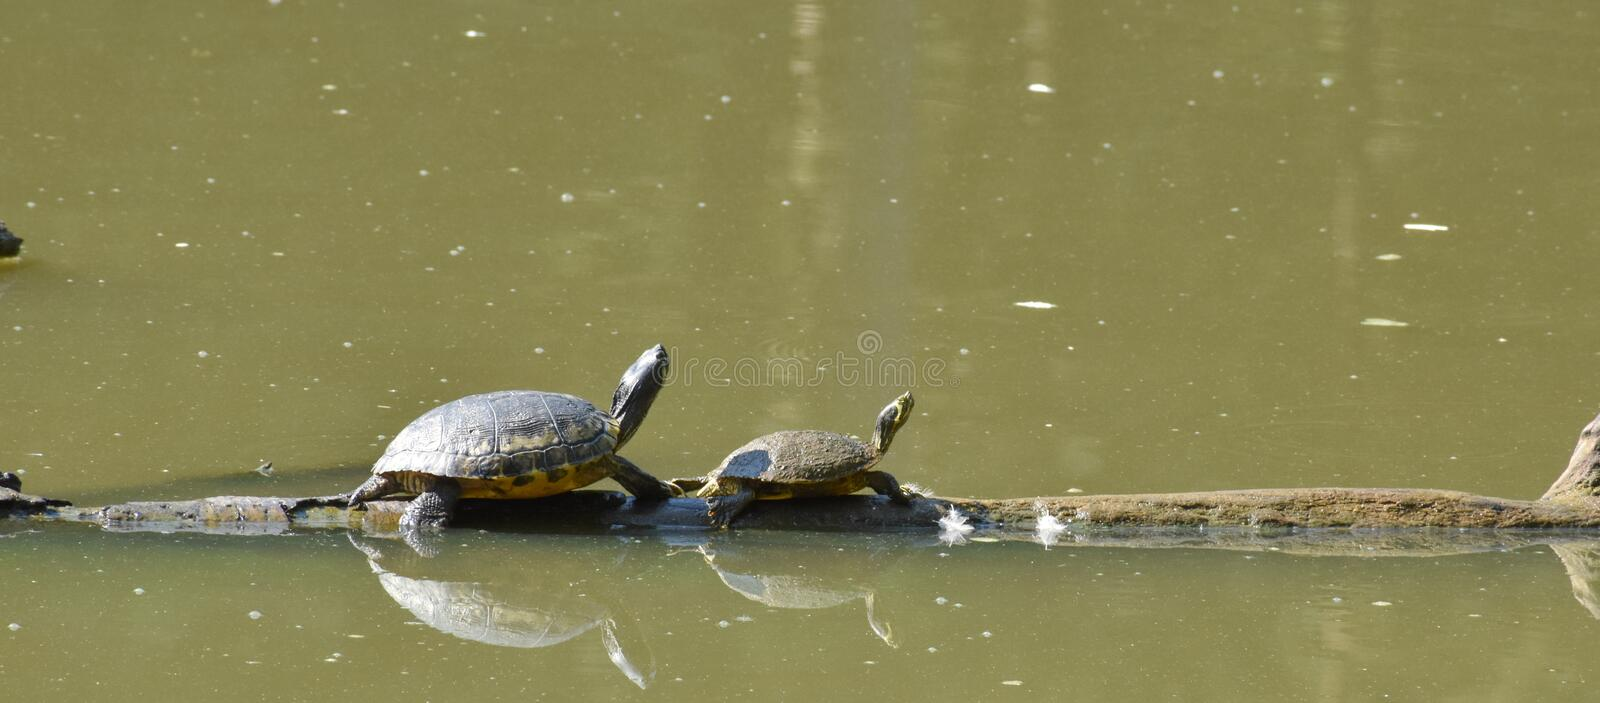 Two turtles on a floating log. Two yellow bellied slider turtles sunning themselves on a floating tree log stock photography